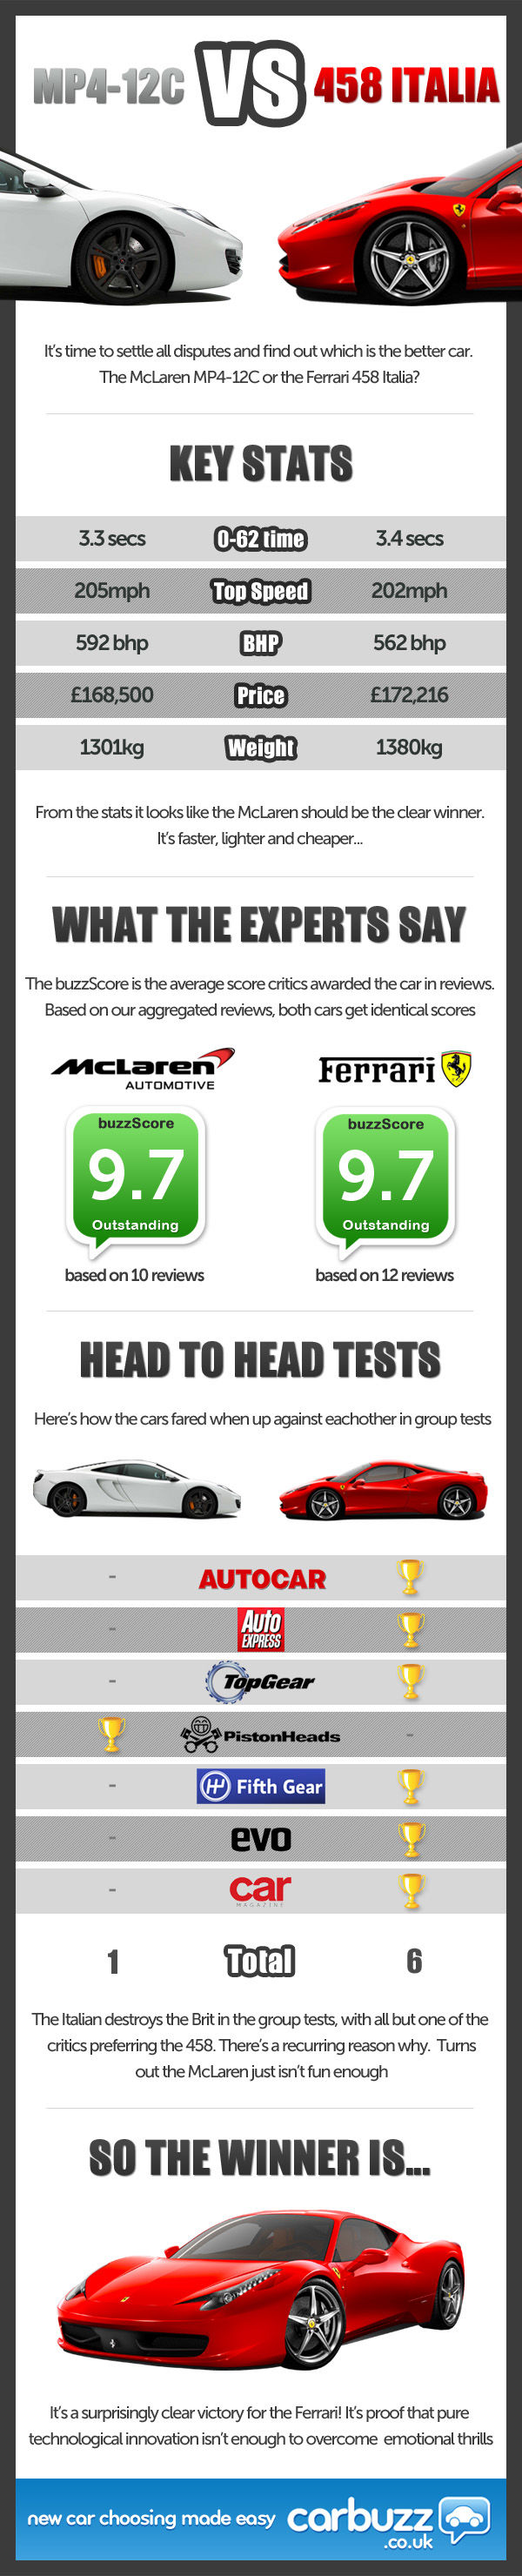 Ferrari 458 vs McLaren MP4-12C